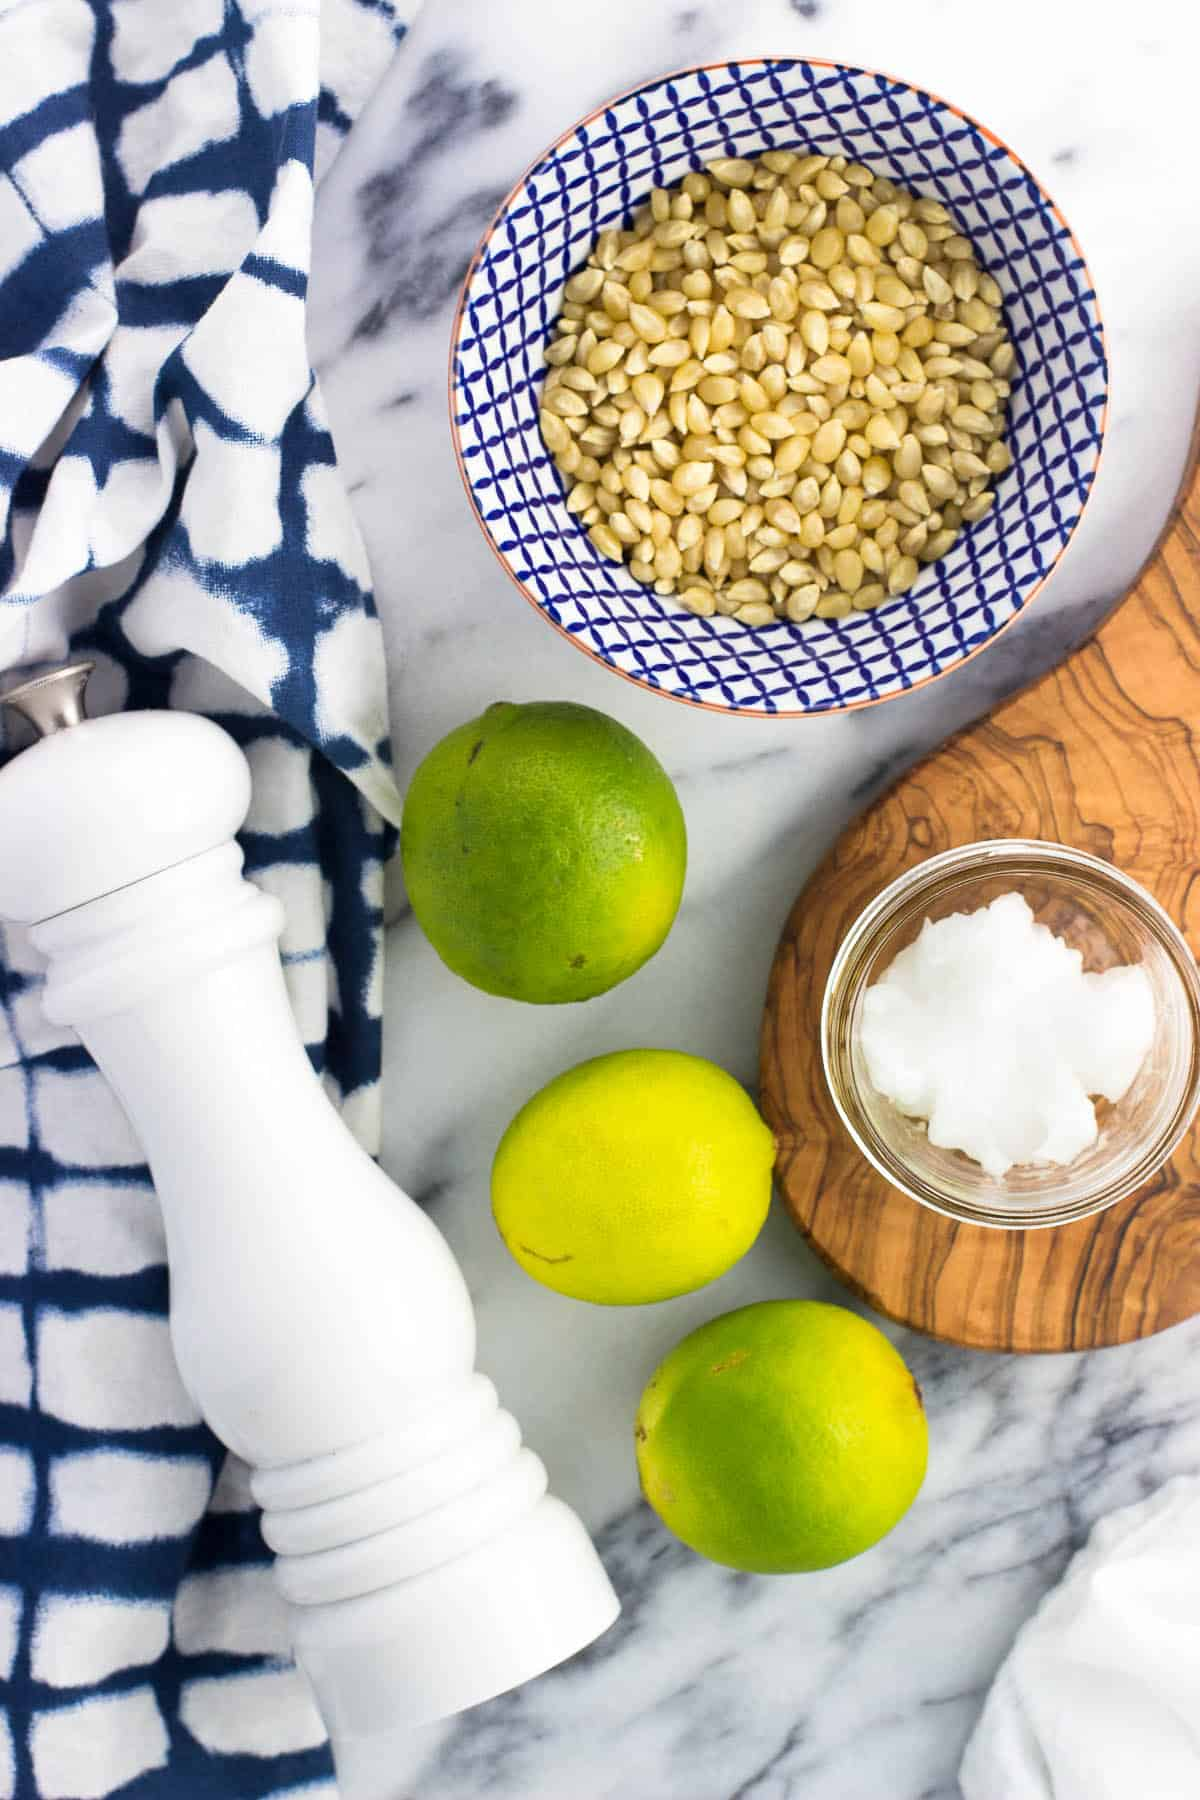 Three limes, a salt mill, a bowl of popcorn kernels, and a small glass jar of coconut oil on a marble board